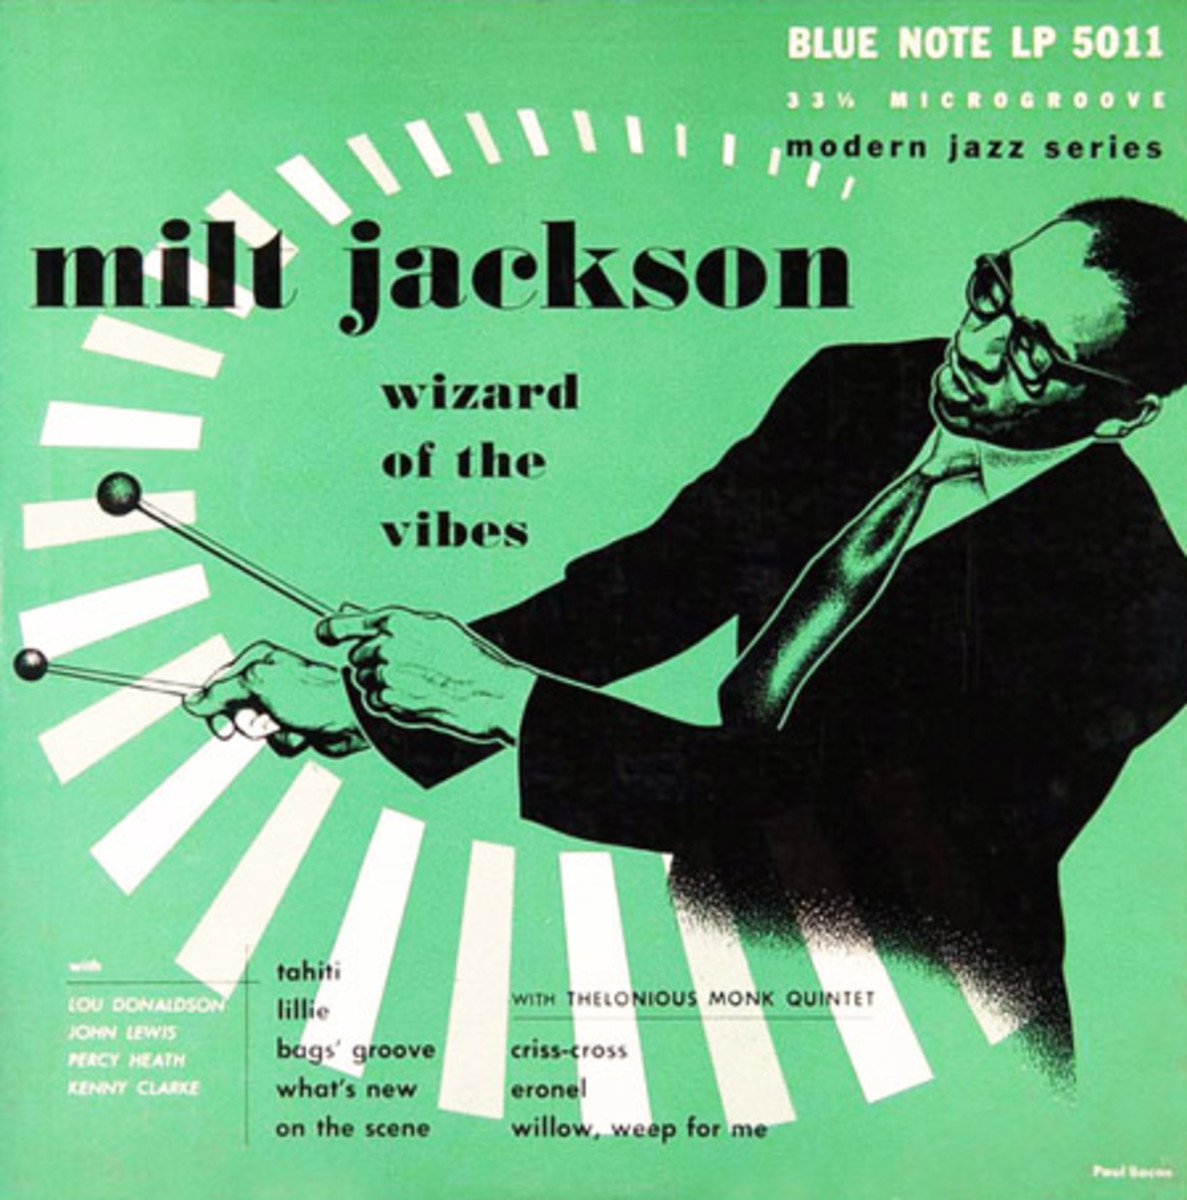 "Milt Jackson ""Wizard of the Vibes"" Blue Note Records BLP 5011 10"" LP Vinyl Record (1952) Album Cover Art by Paul Bacon"